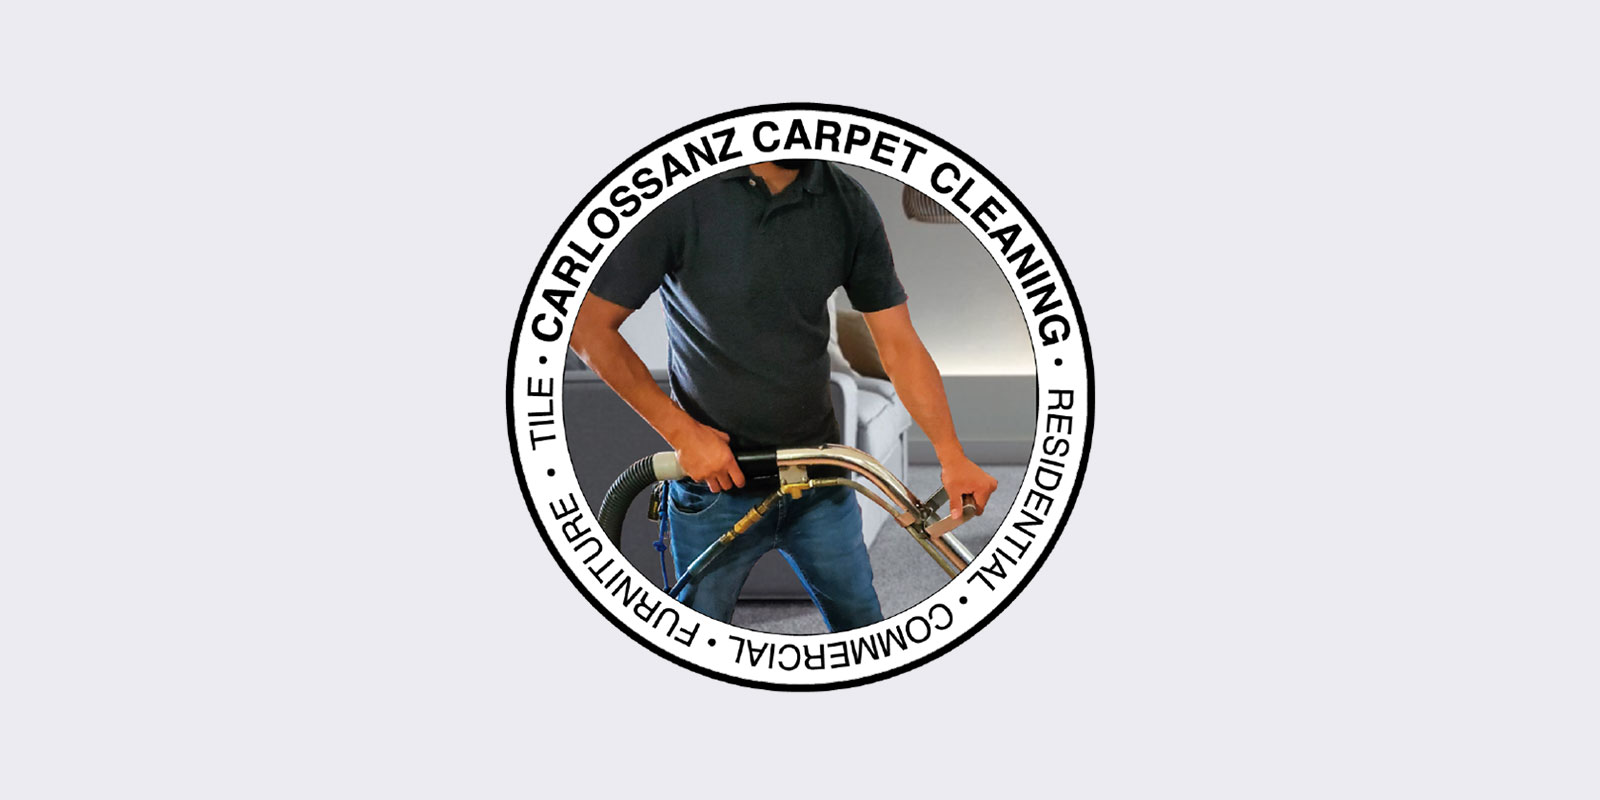 Carlossanz Carpet Cleaning